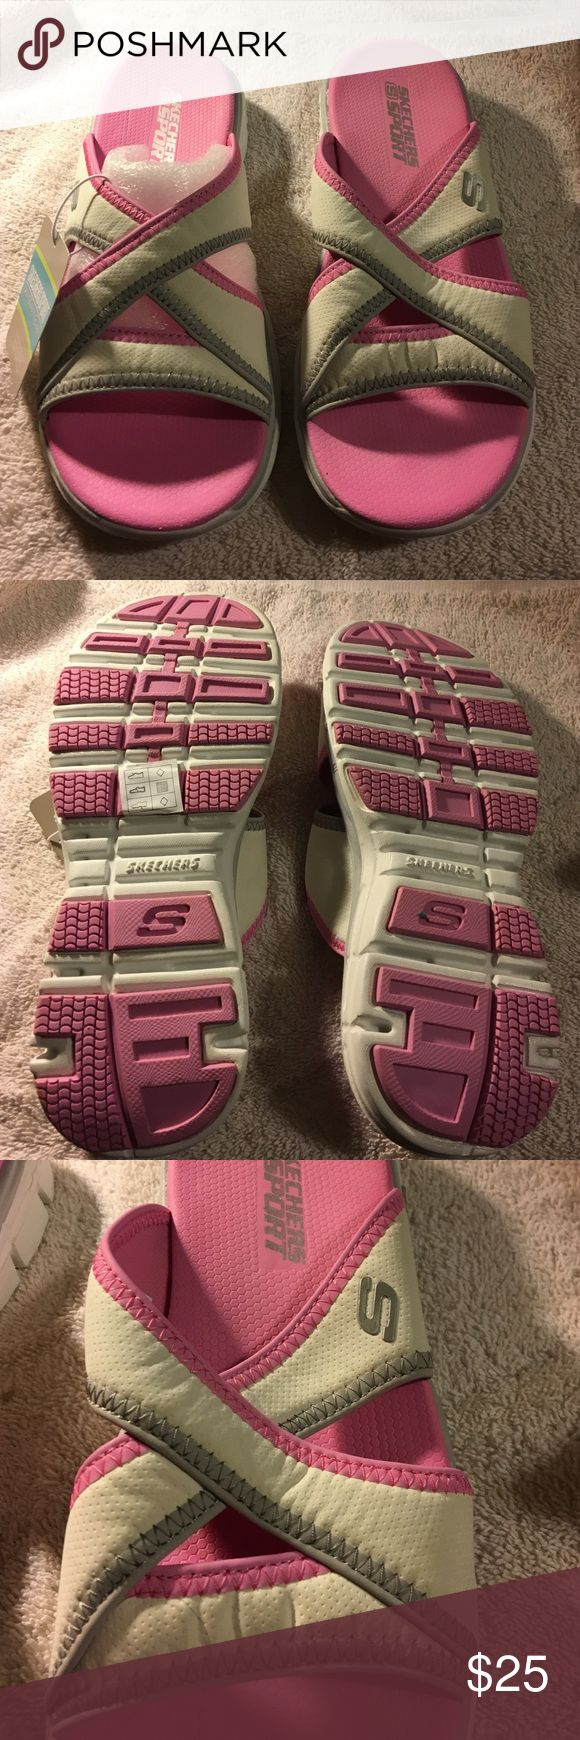 Pink Skechers slippers Perfect for after swimming or the beach. Good sole, never worn and brand new. Skechers Shoes Slippers